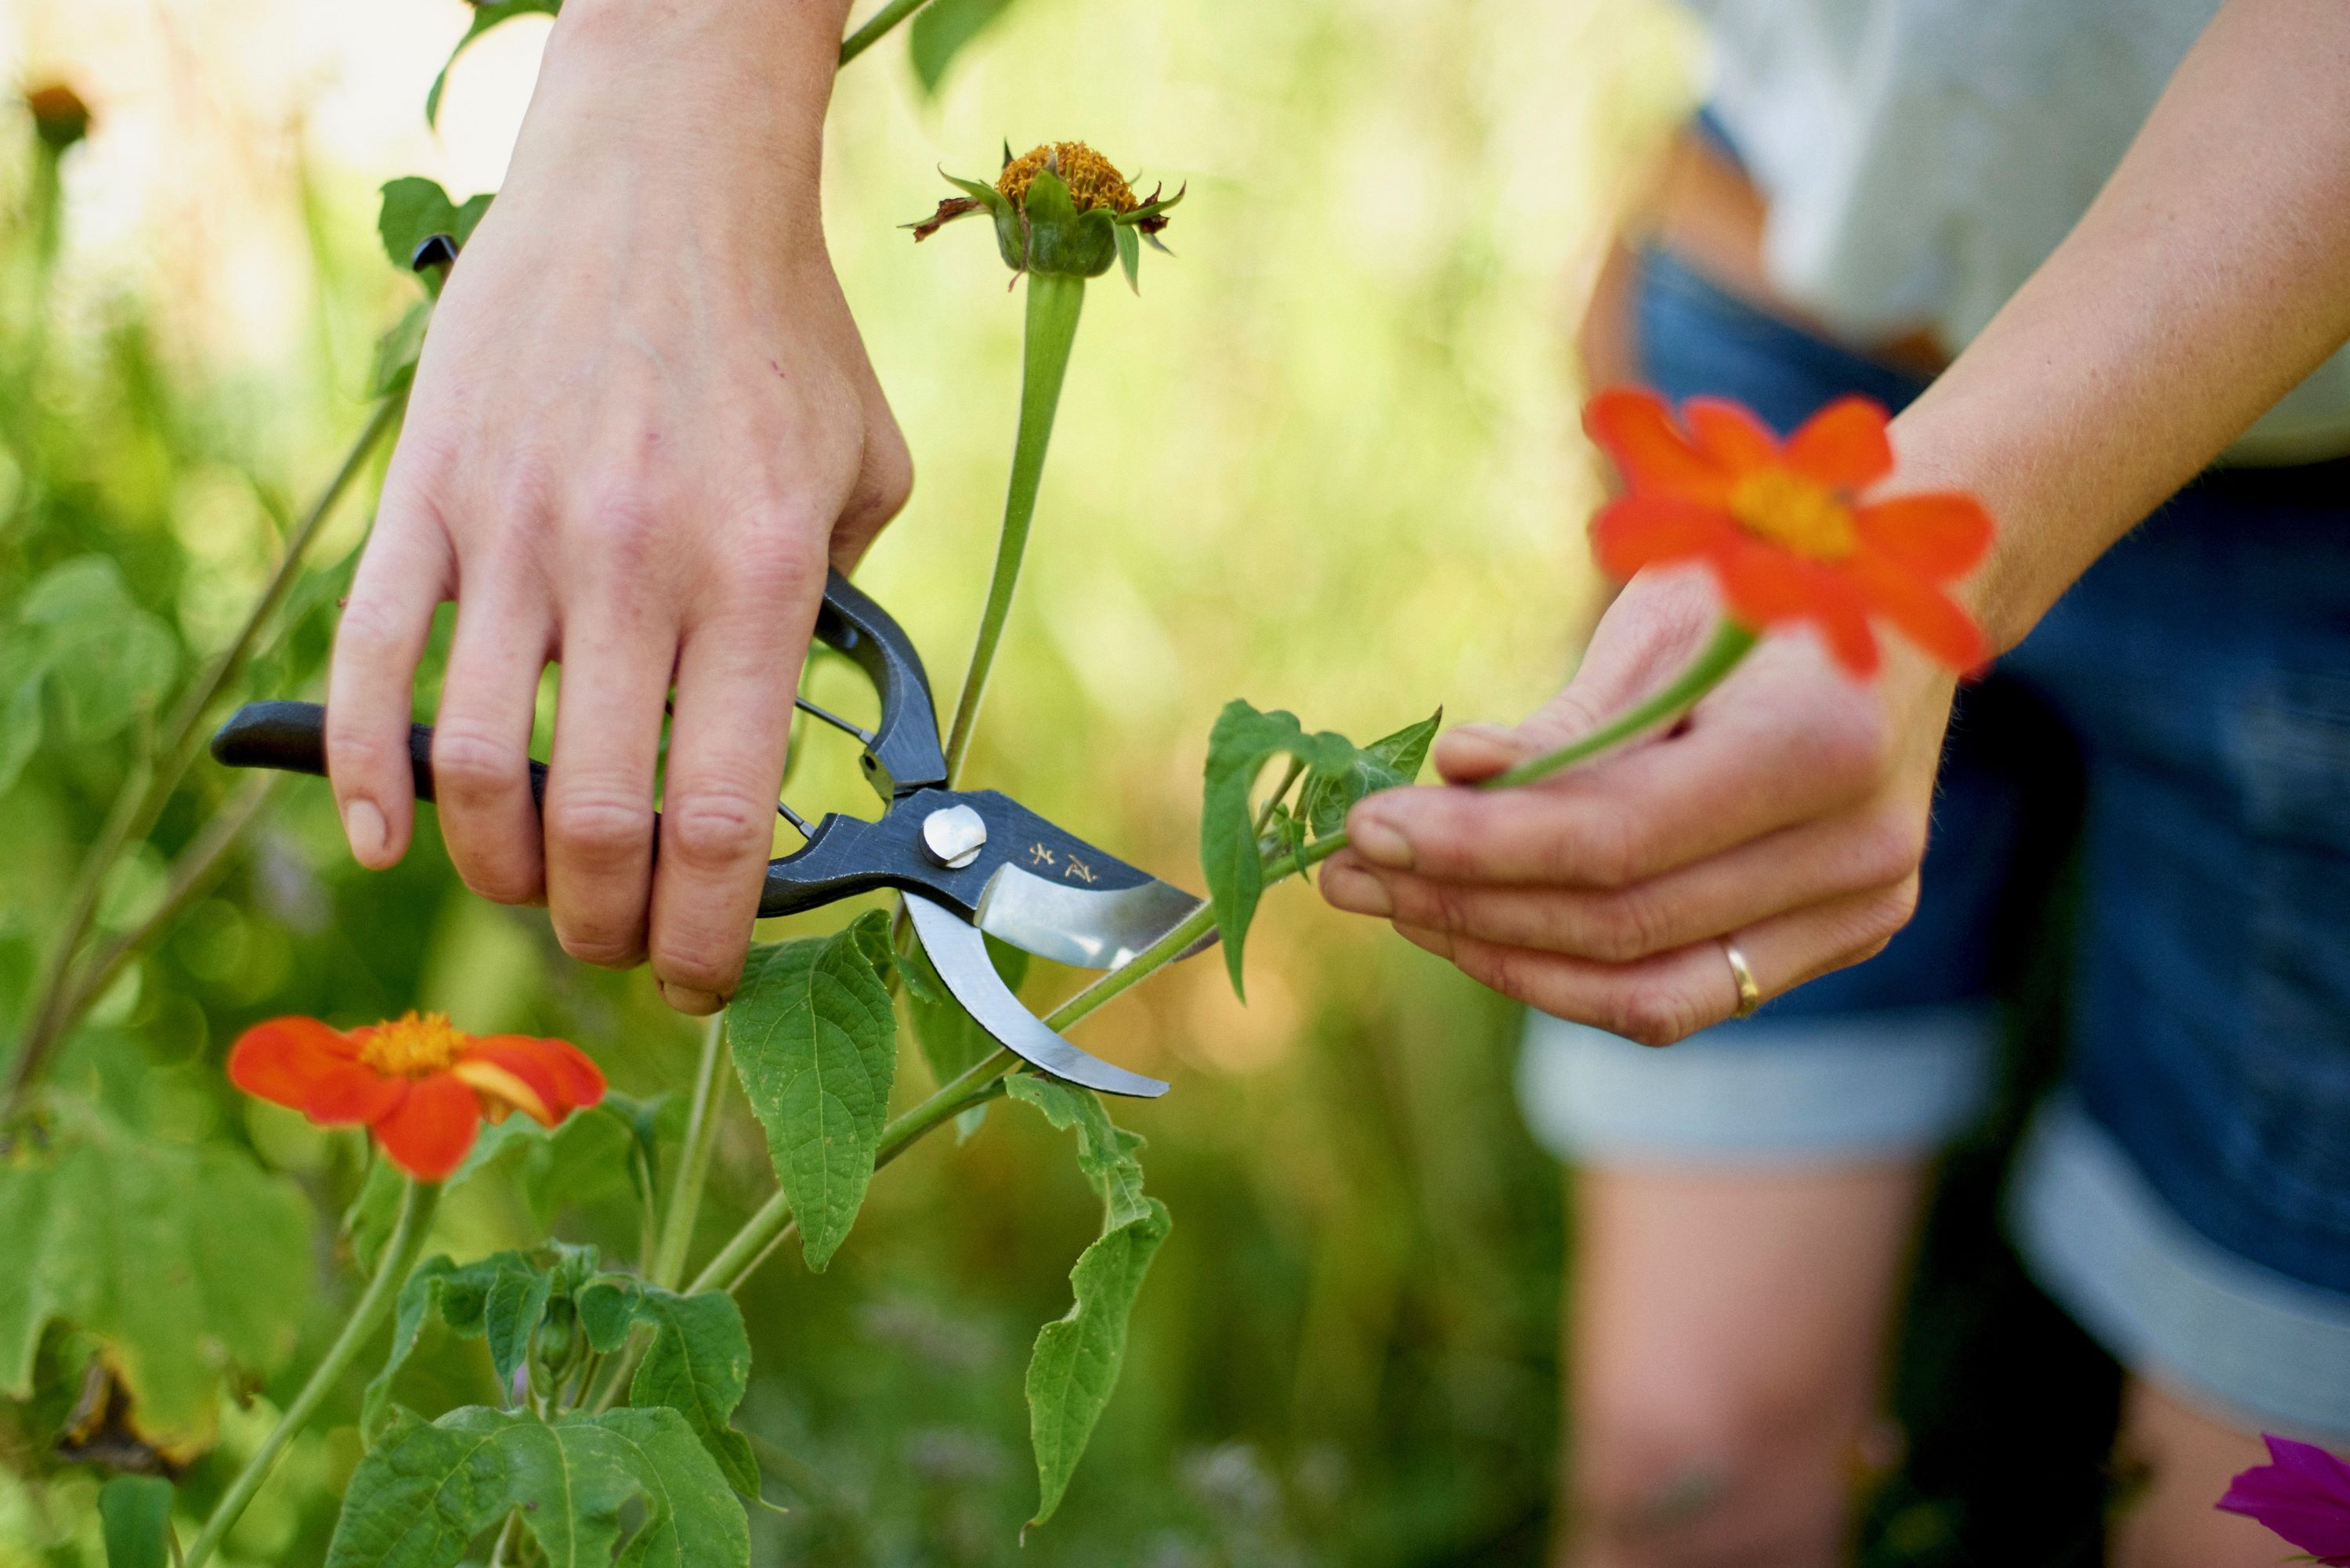 Pruning Tools: Secateurs, Topiary Clippers & Shears